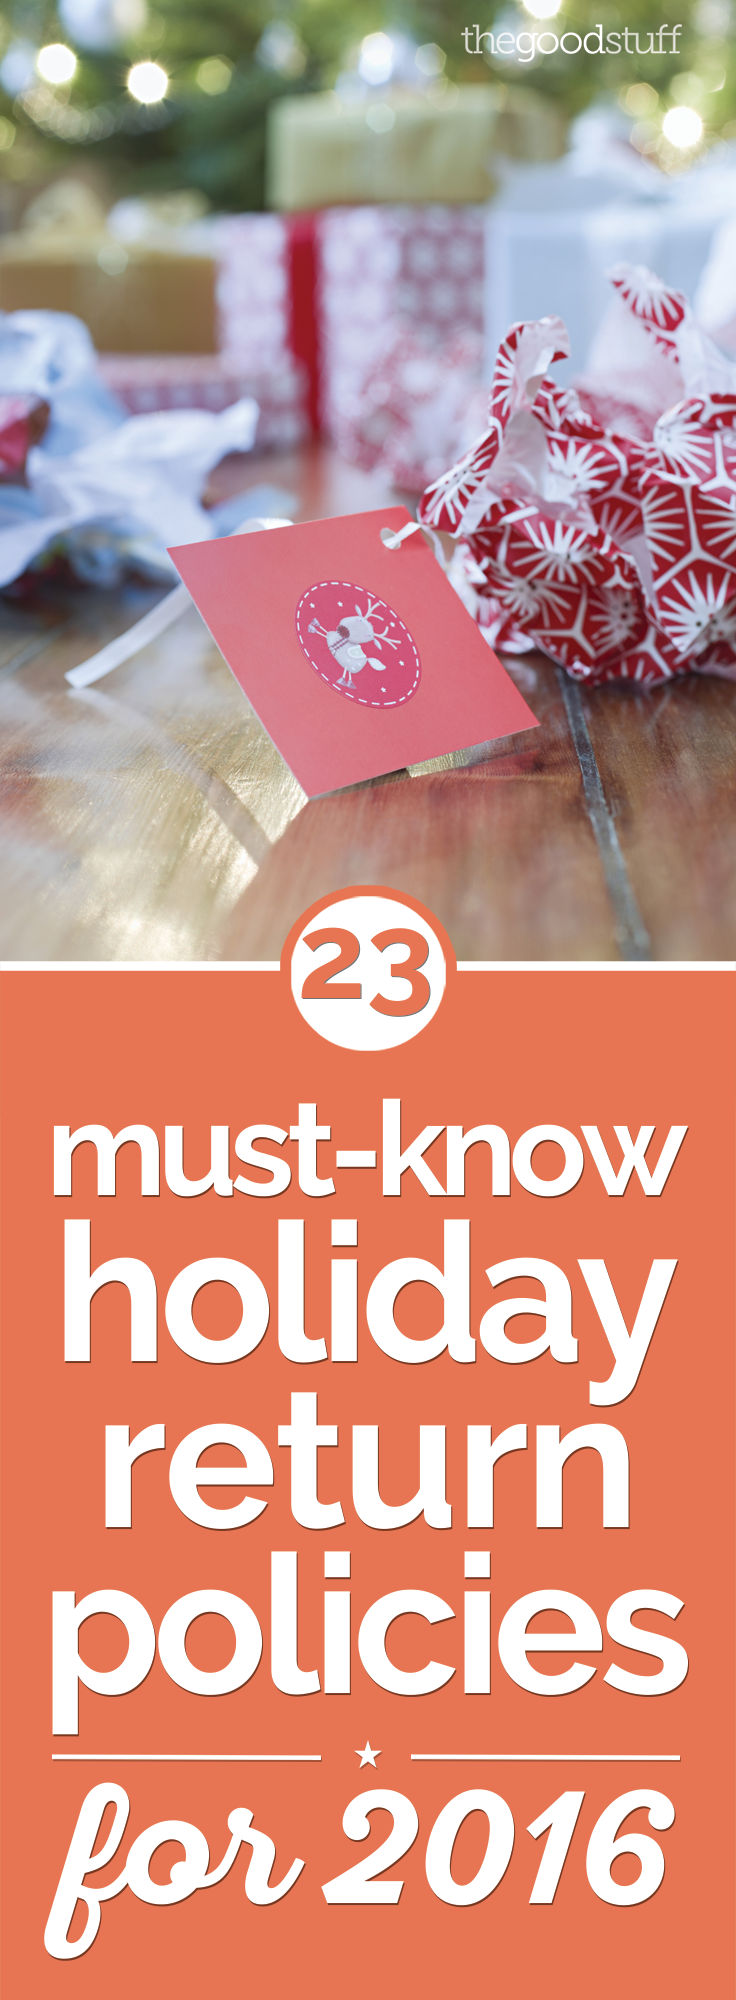 23 Must-Know Holiday Return Policies for 2016